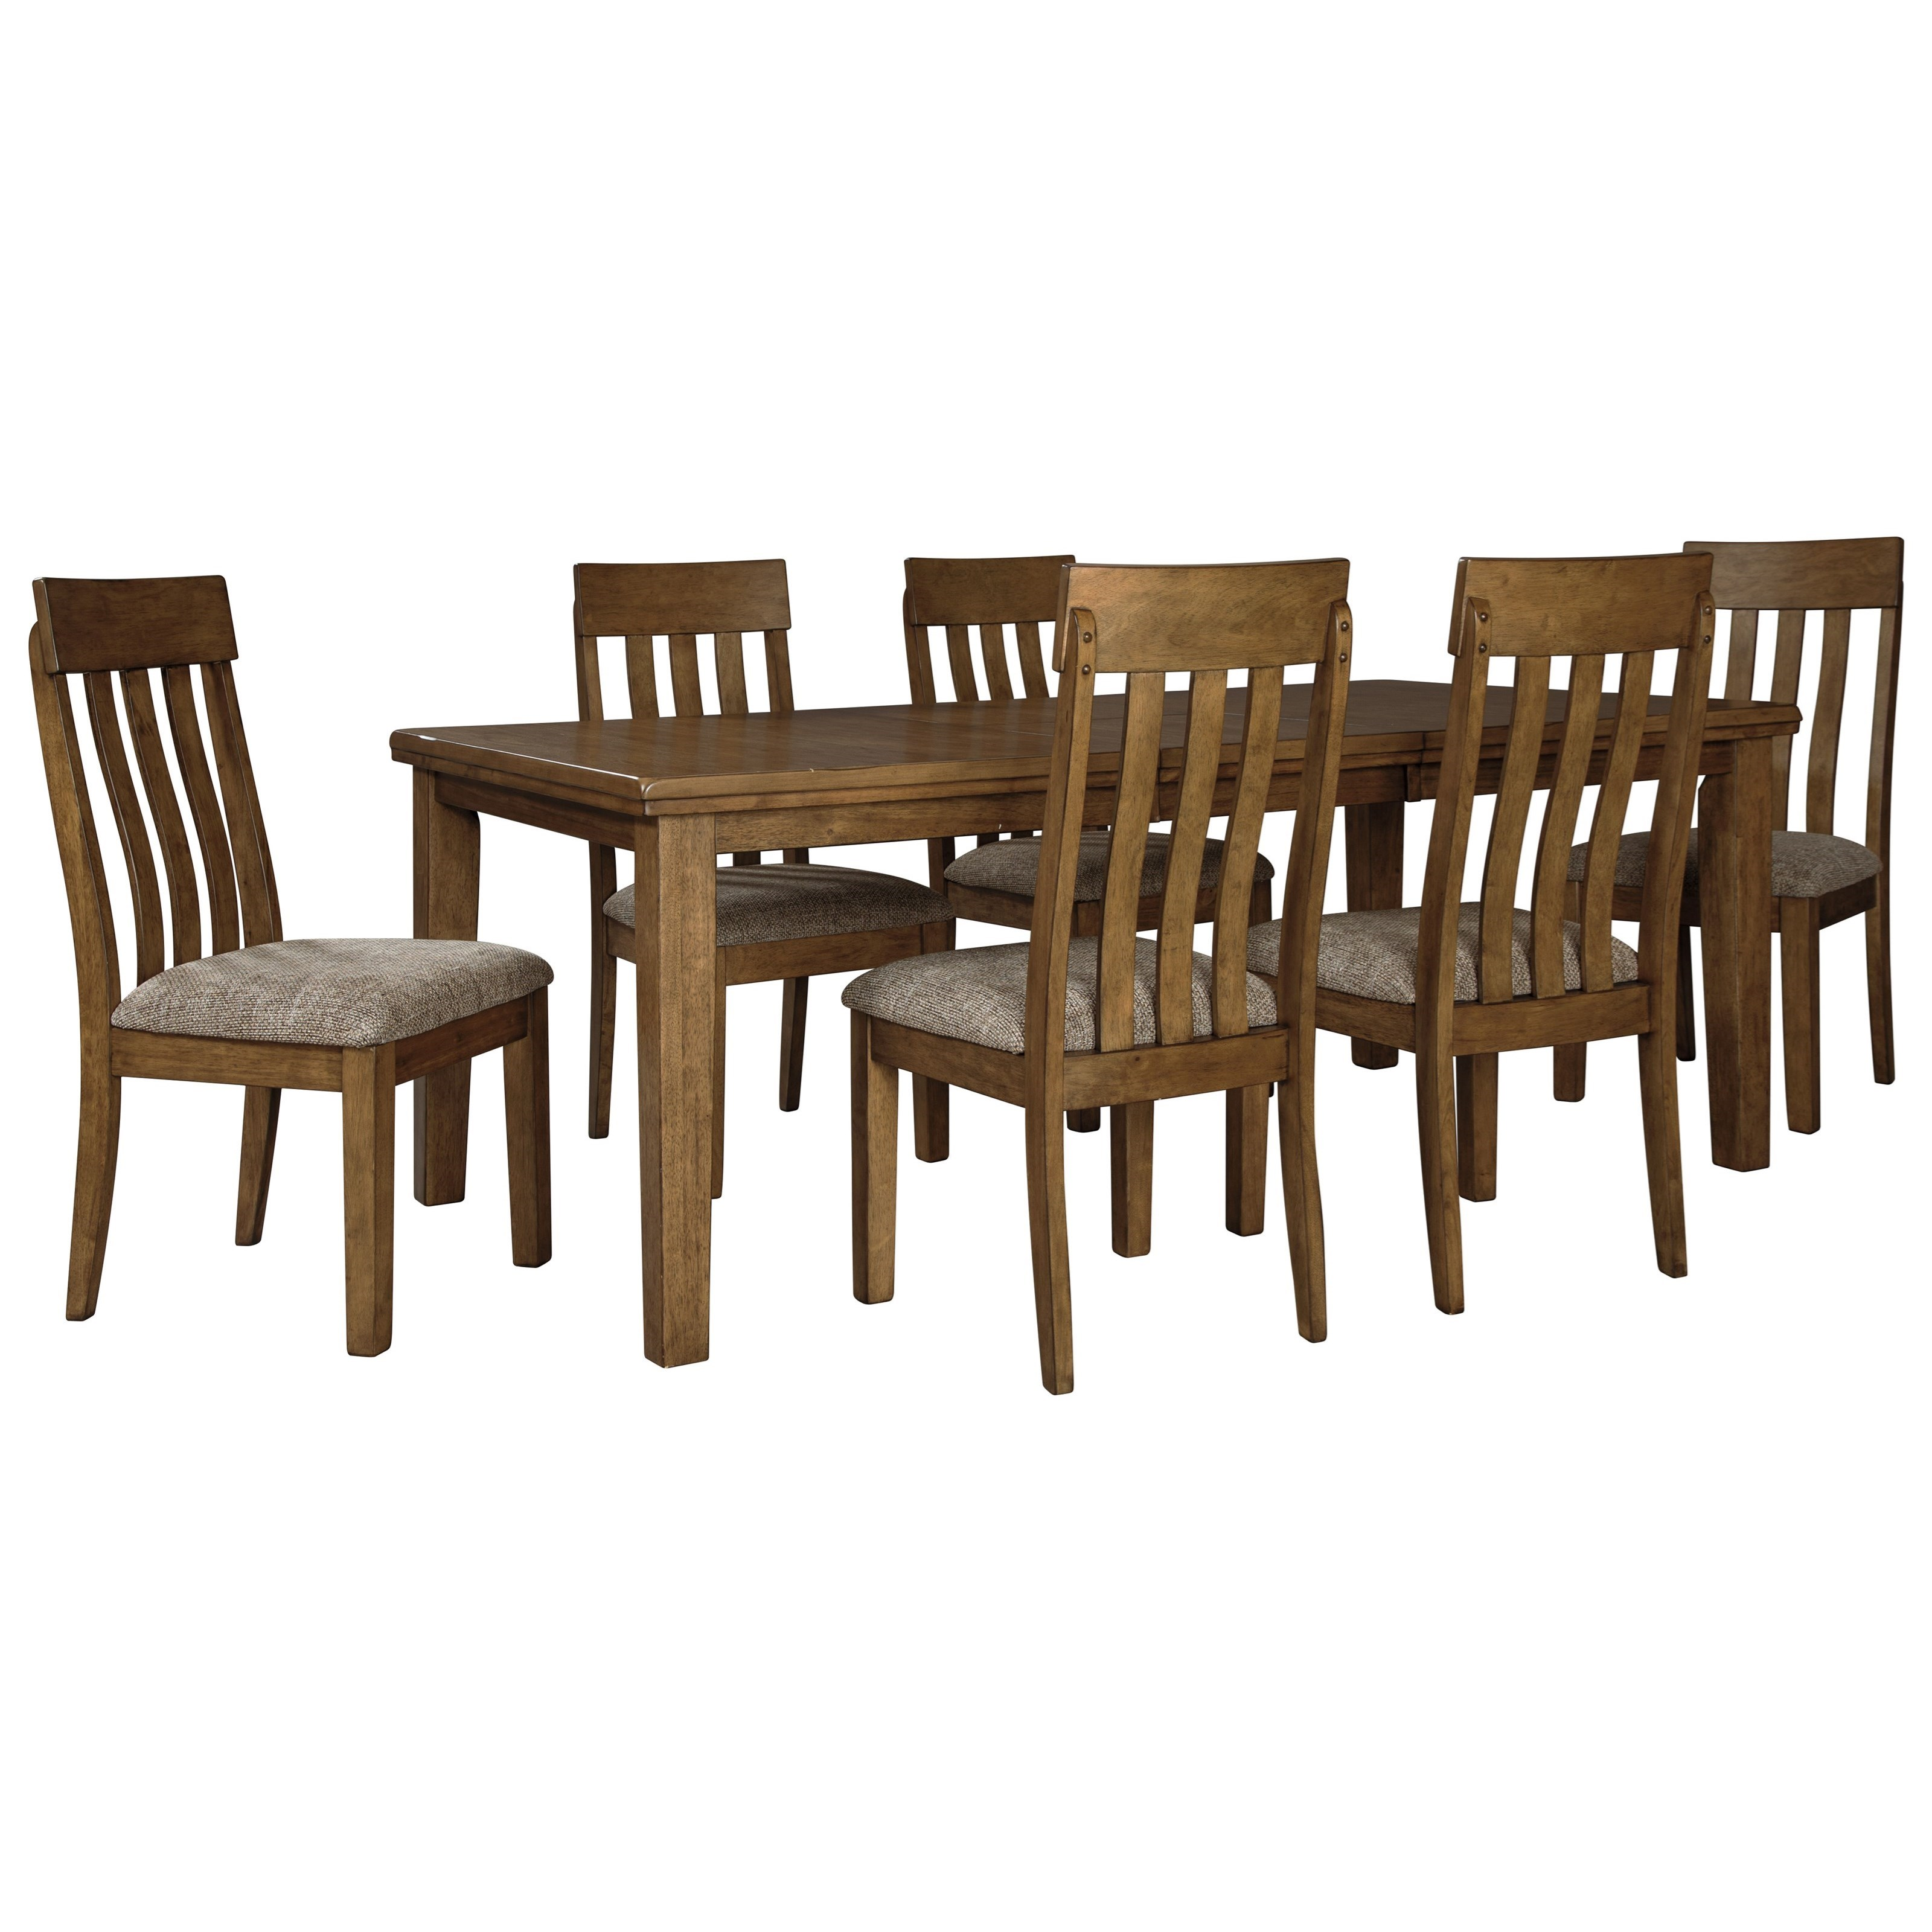 Flaybern 7-Piece Table and Chair Set by Benchcraft at Walker's Furniture